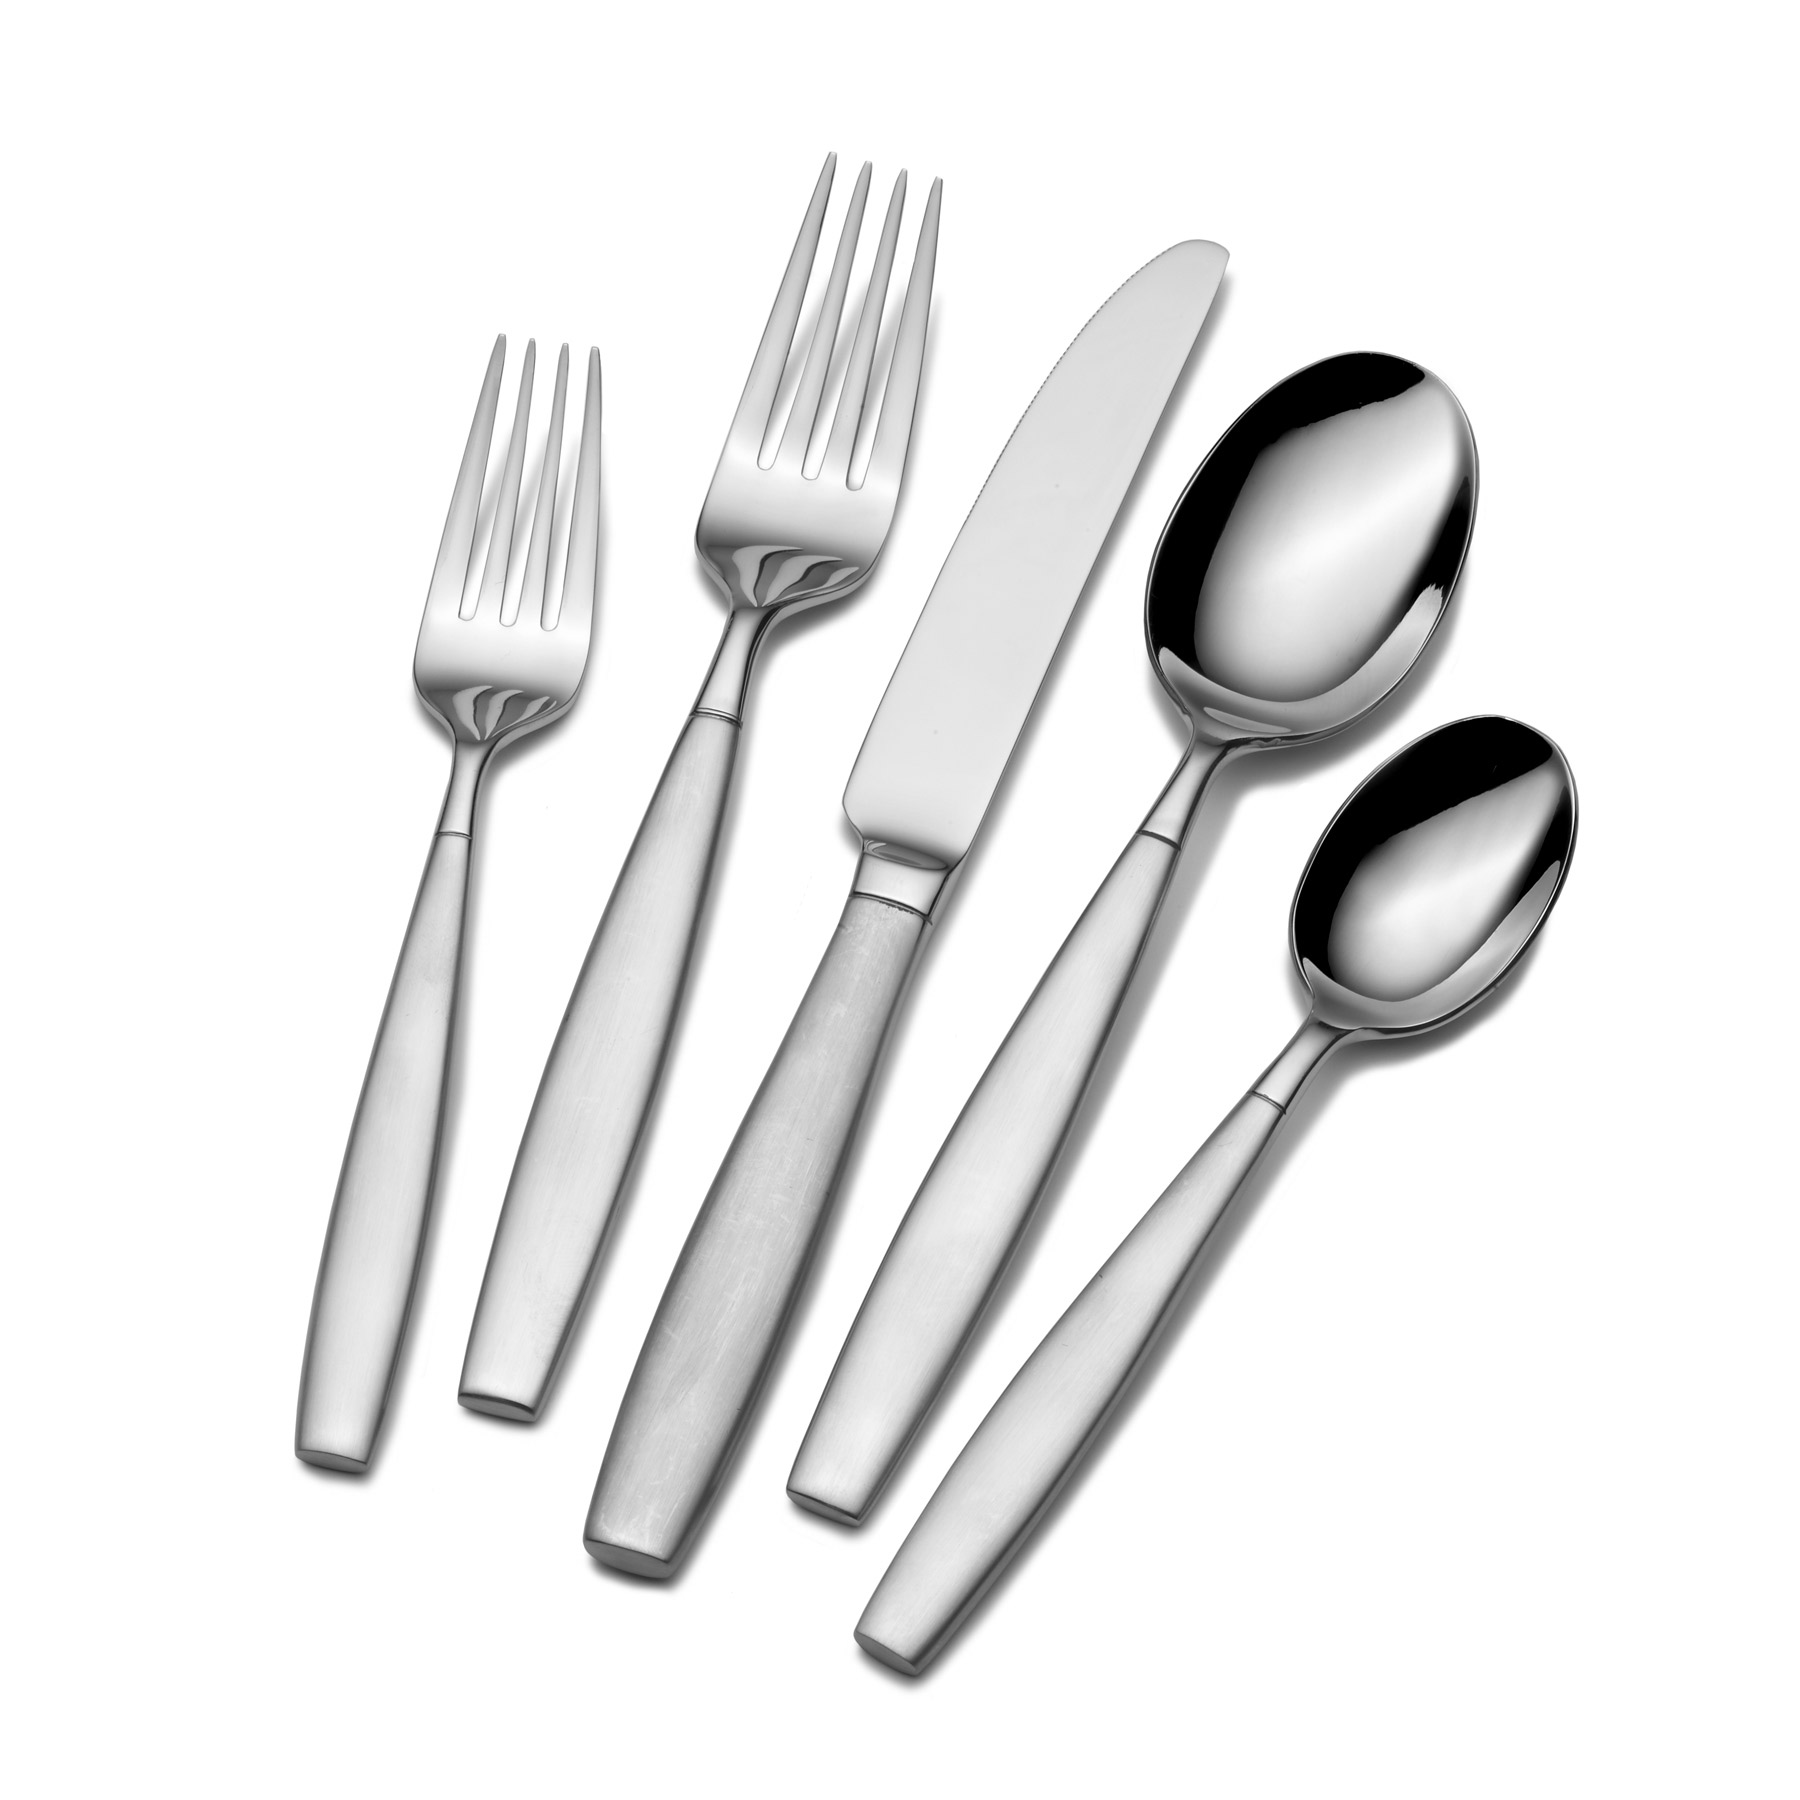 Appealing towle flatware 5 piece stainless steel flatware set for serveware ideas